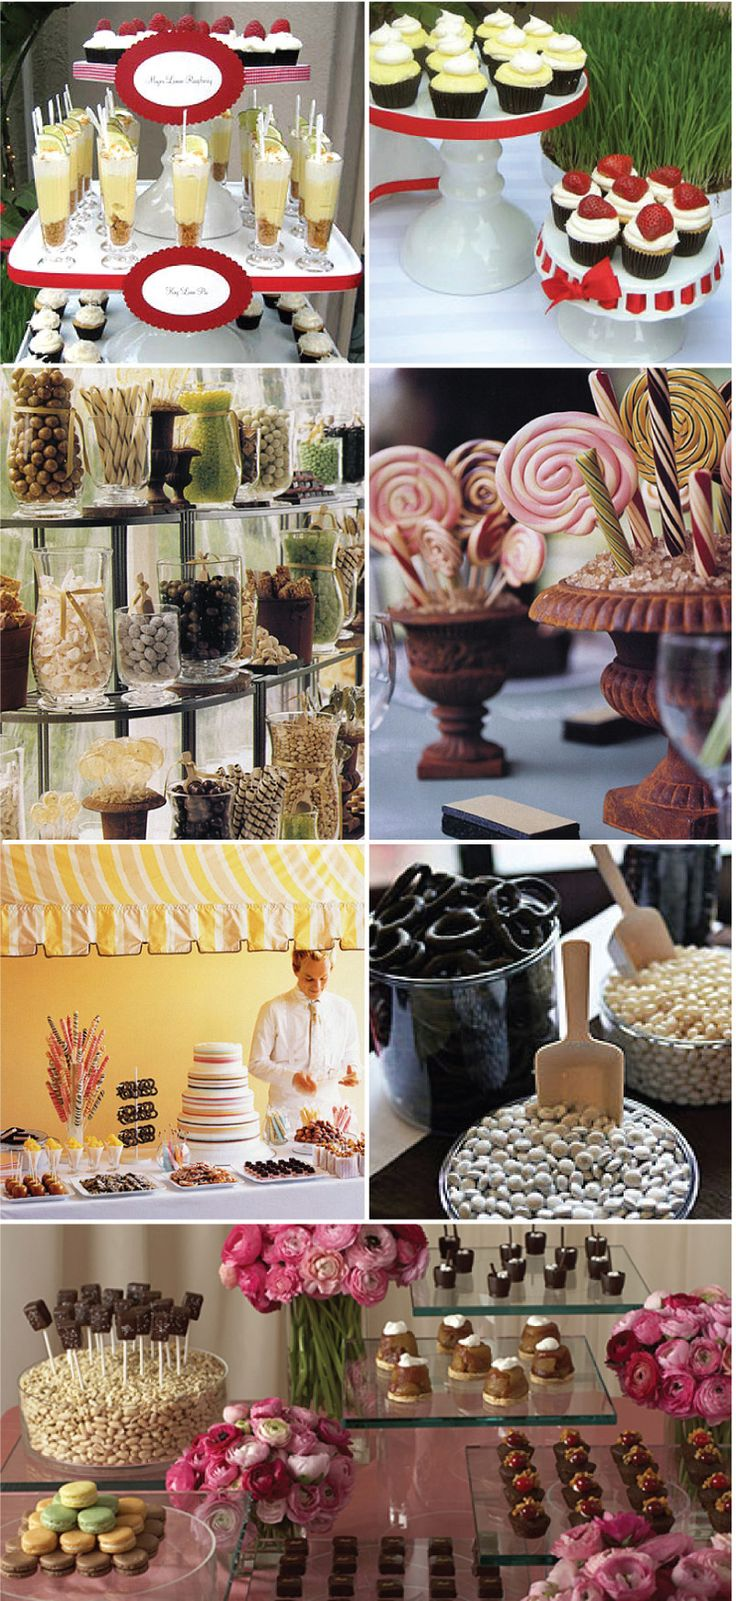 candy bar wedding cake taceys wedding pinterest. Black Bedroom Furniture Sets. Home Design Ideas